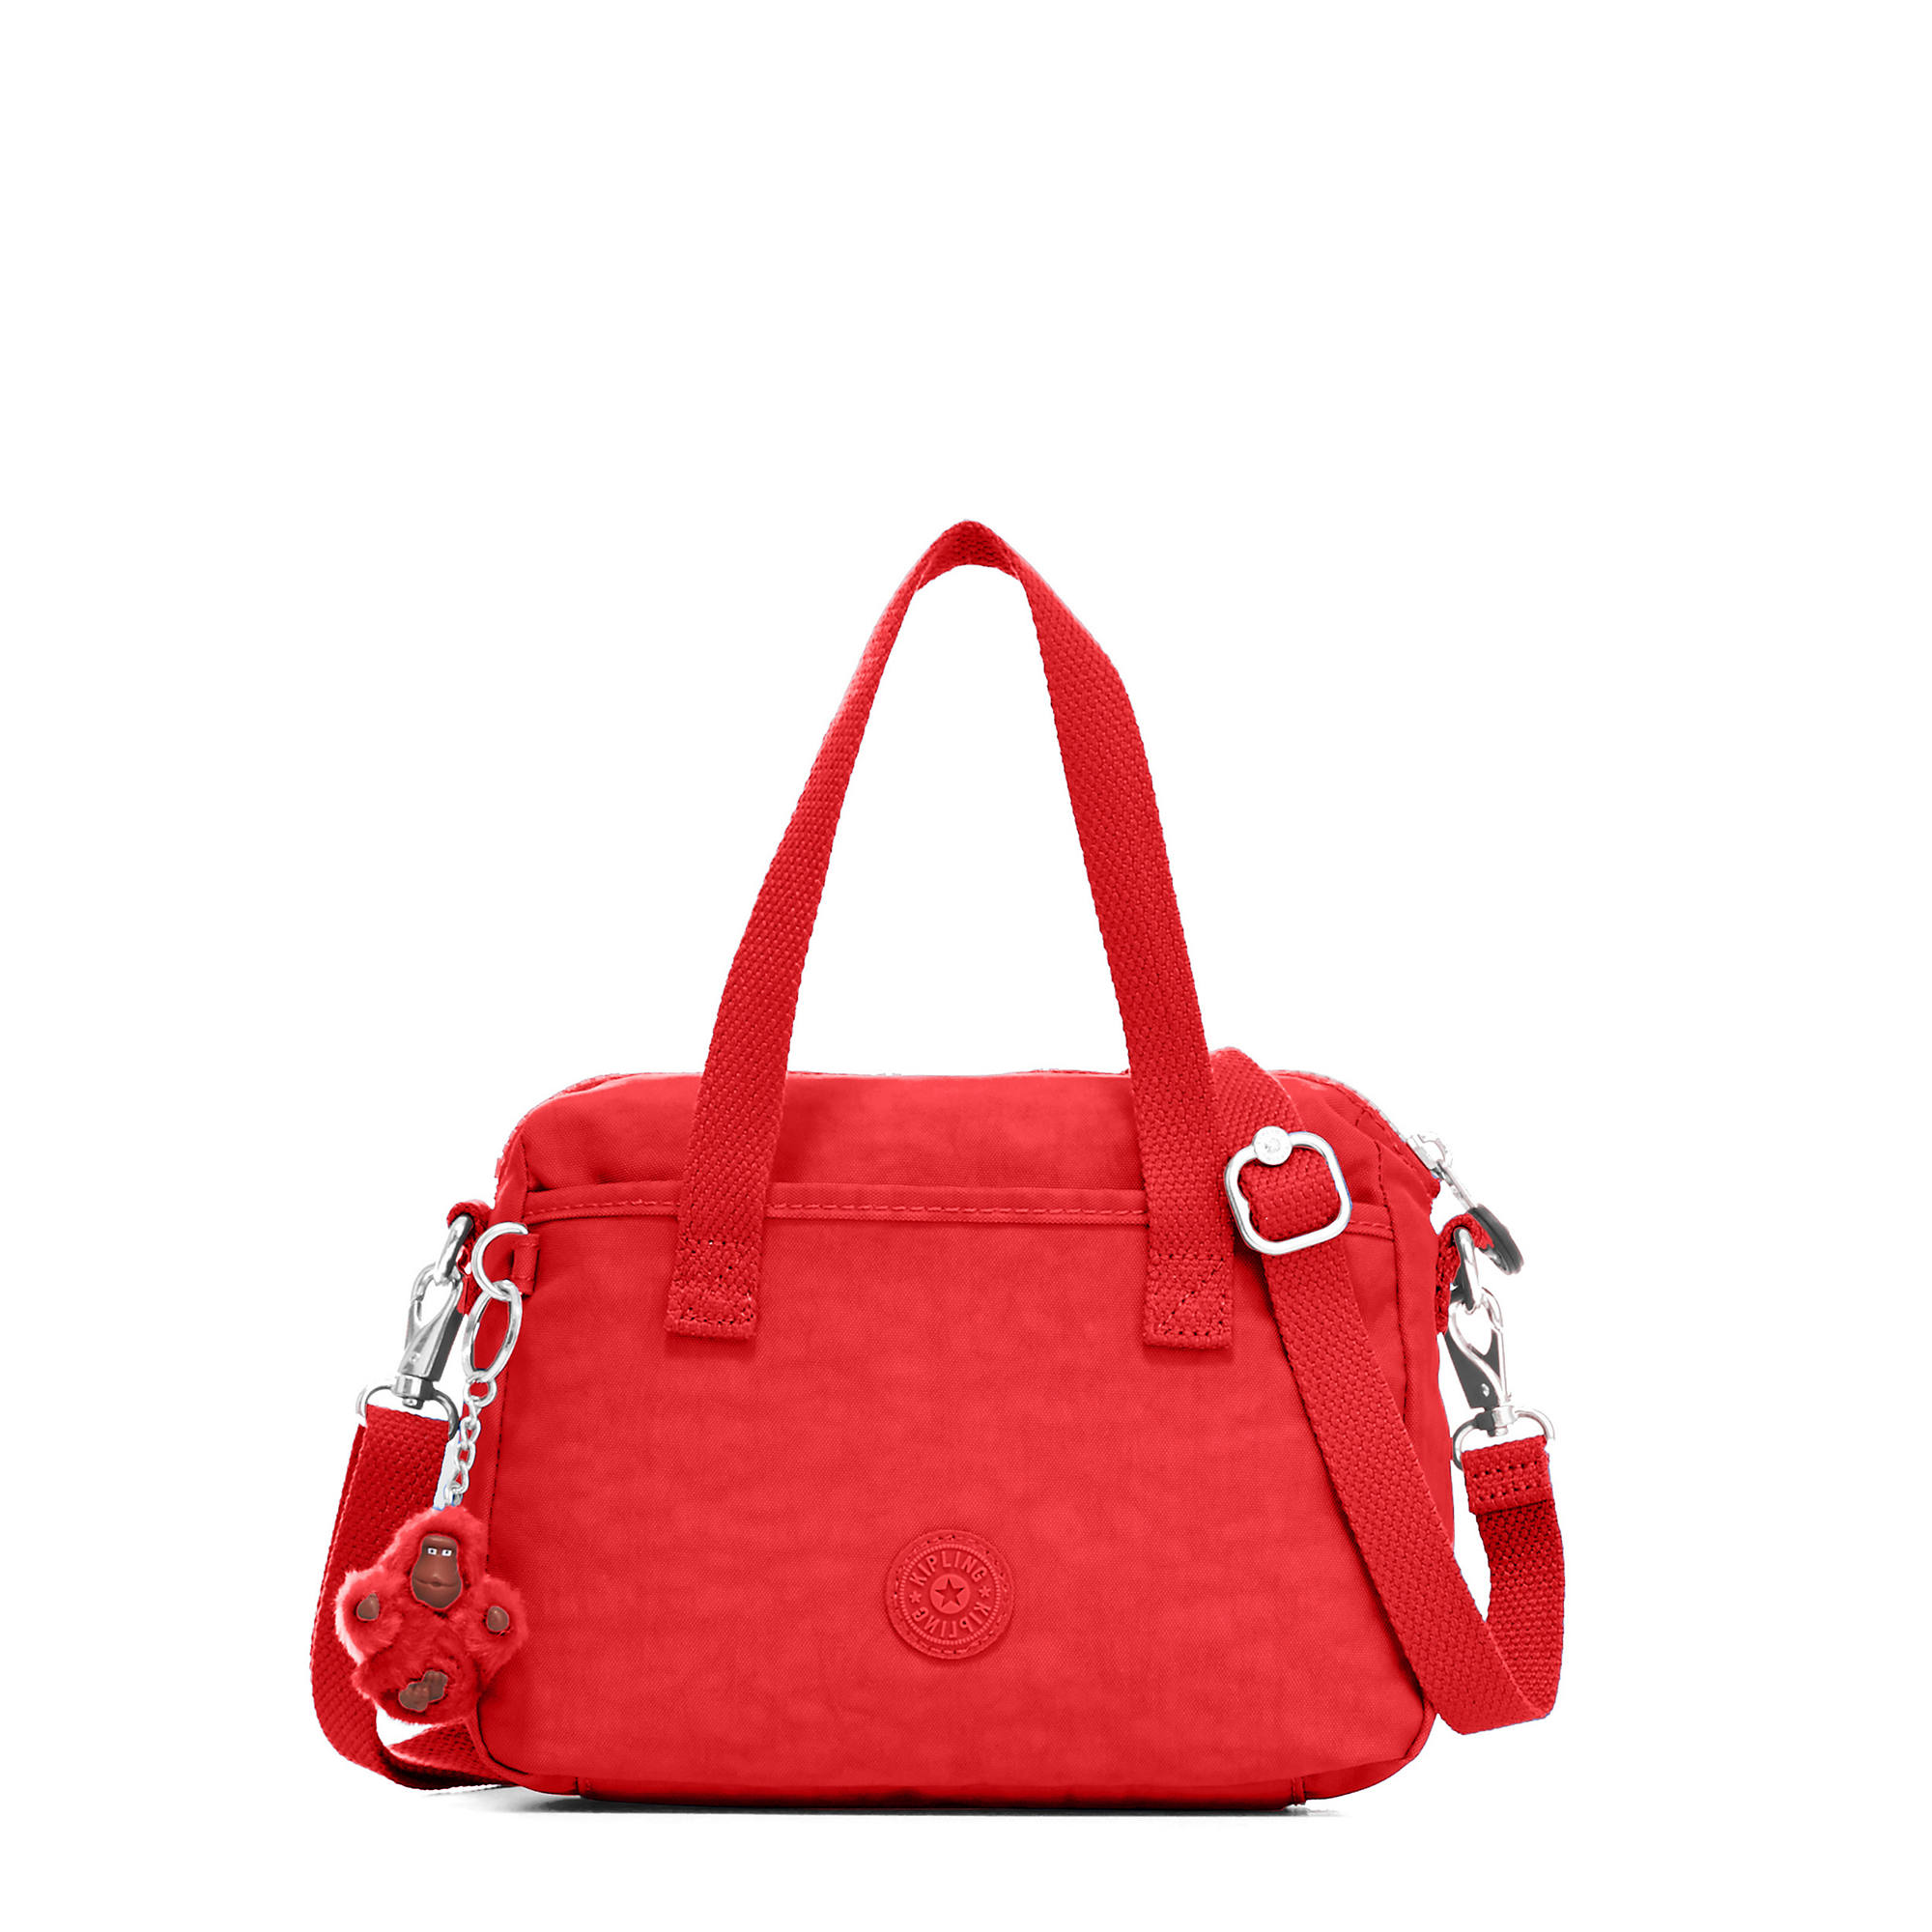 Emoli Handbag Cherry Large